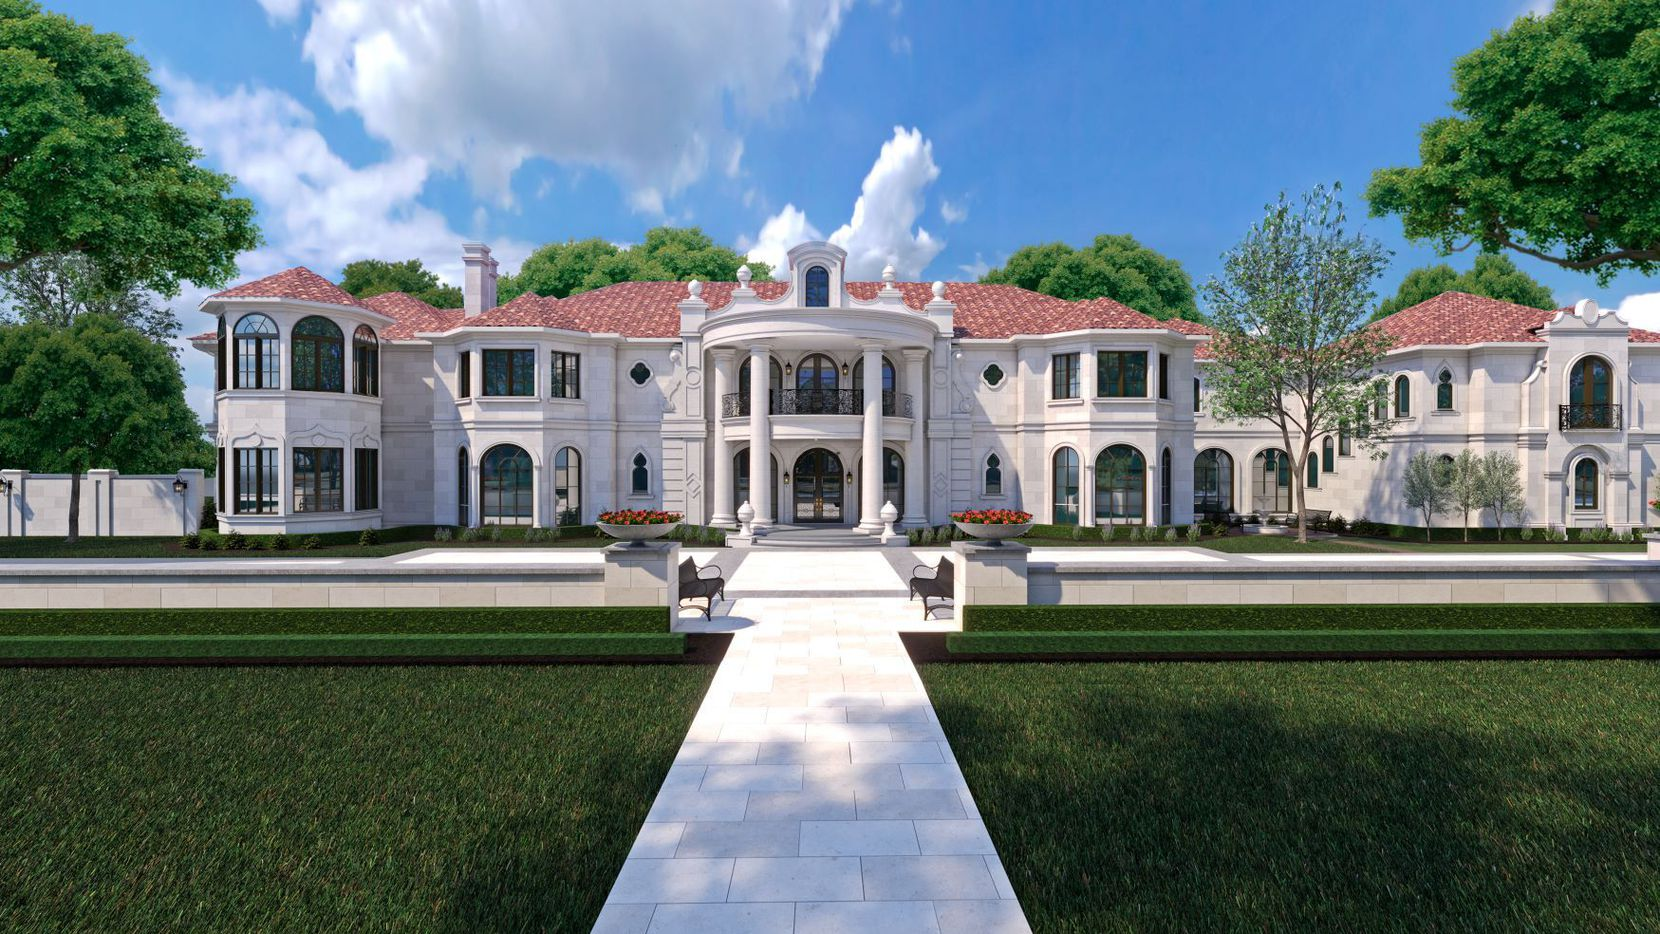 This rendering shows the plans for the home at 6915 Baltimore Drive in University Park. The home, which is currently under construction, is on the market for $37.5 million and is a custom design by architect Richard Drummond Davis.